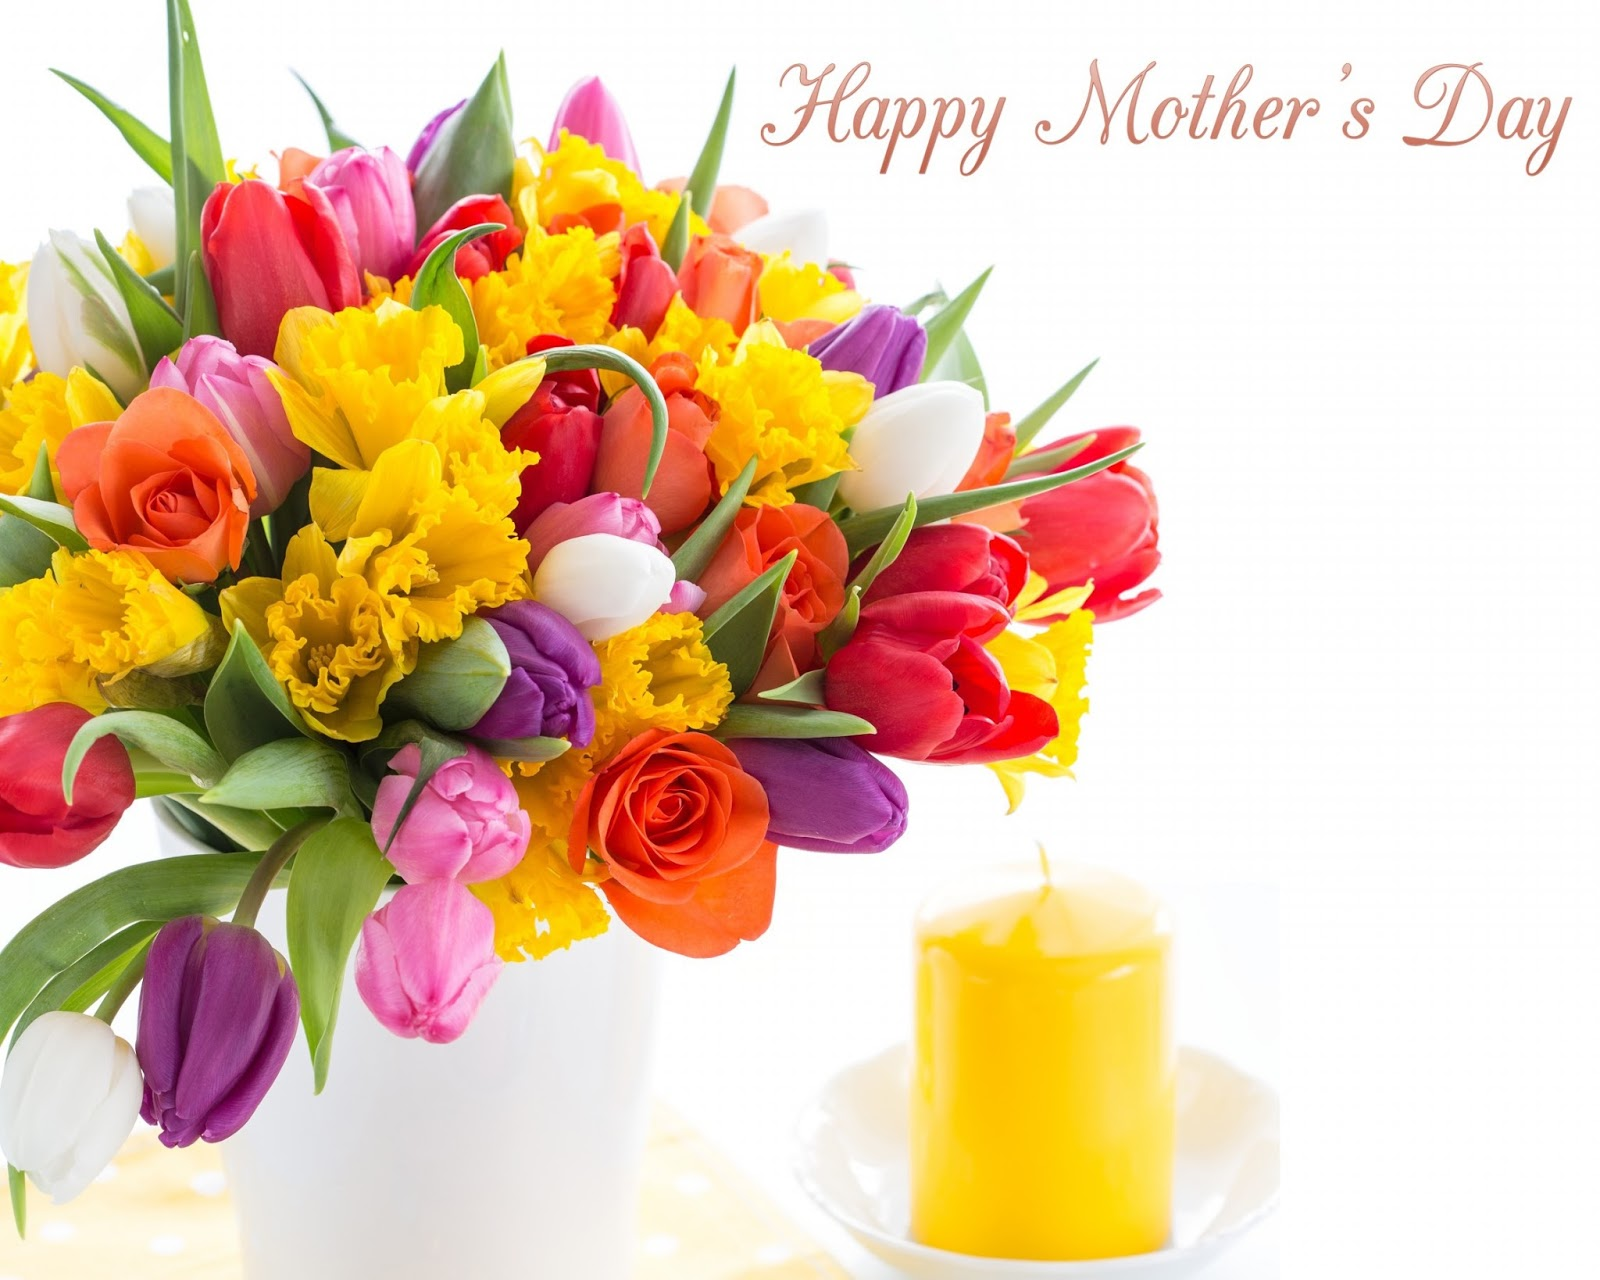 Happy Mothers Day Images, Greetings Cards, Wishes, Quotes